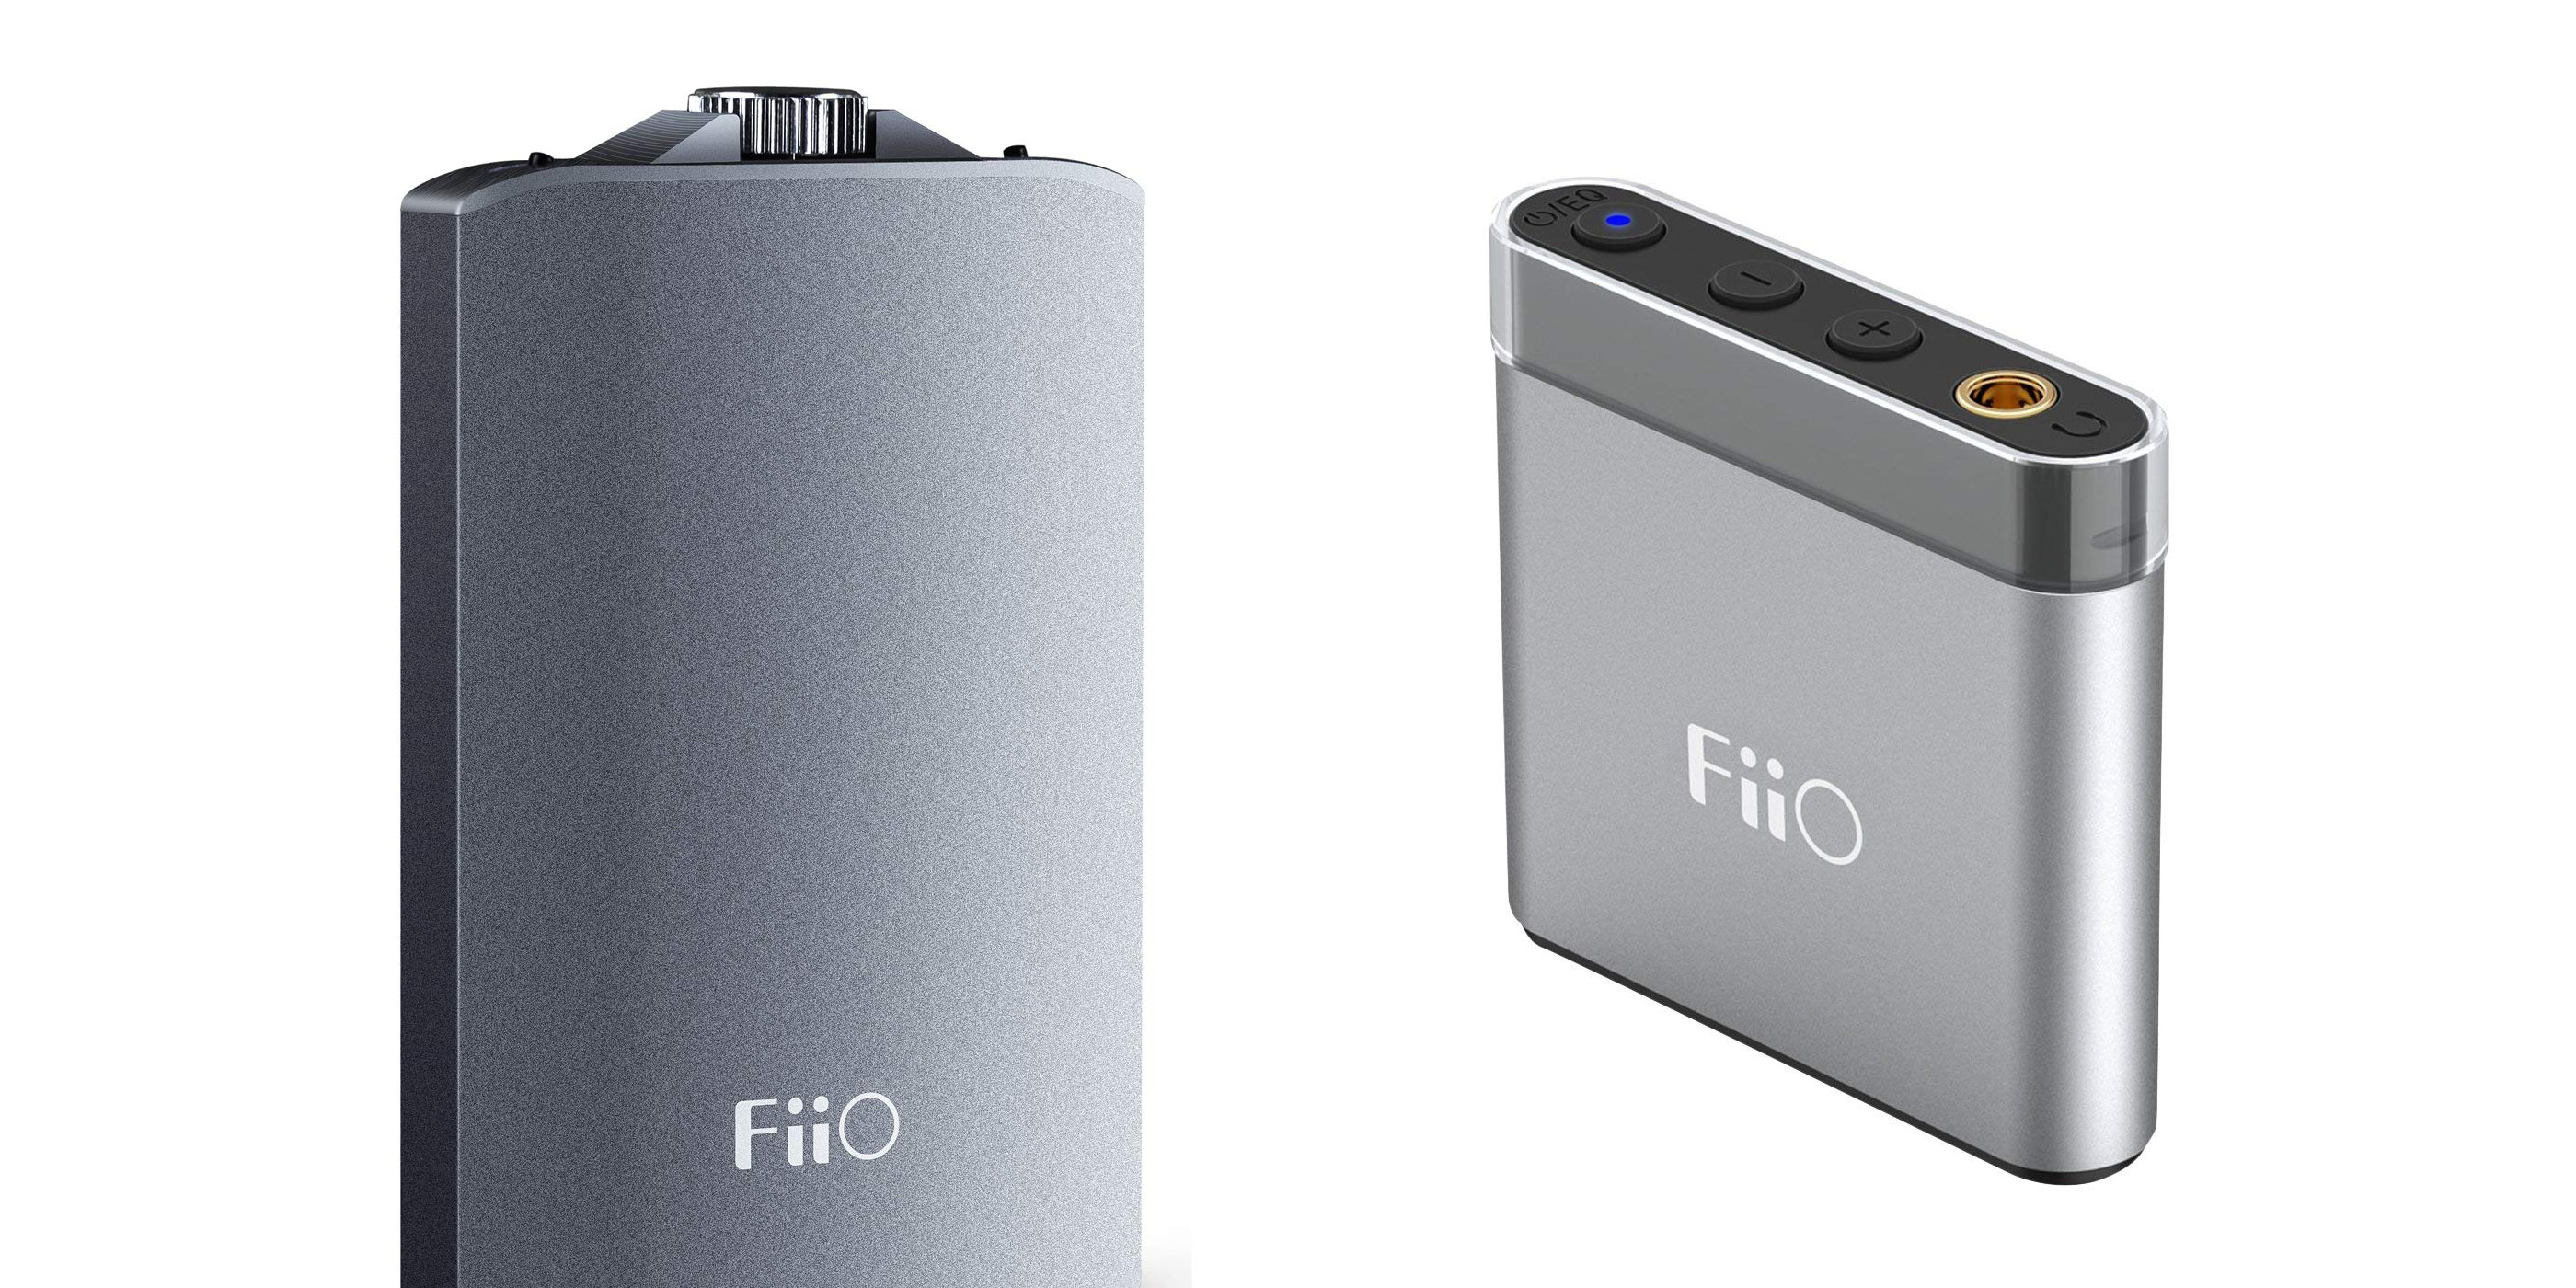 Take your mobile audio up a notch w/ a FiiO Headphone Amp from $18 (Reg. $28) + more